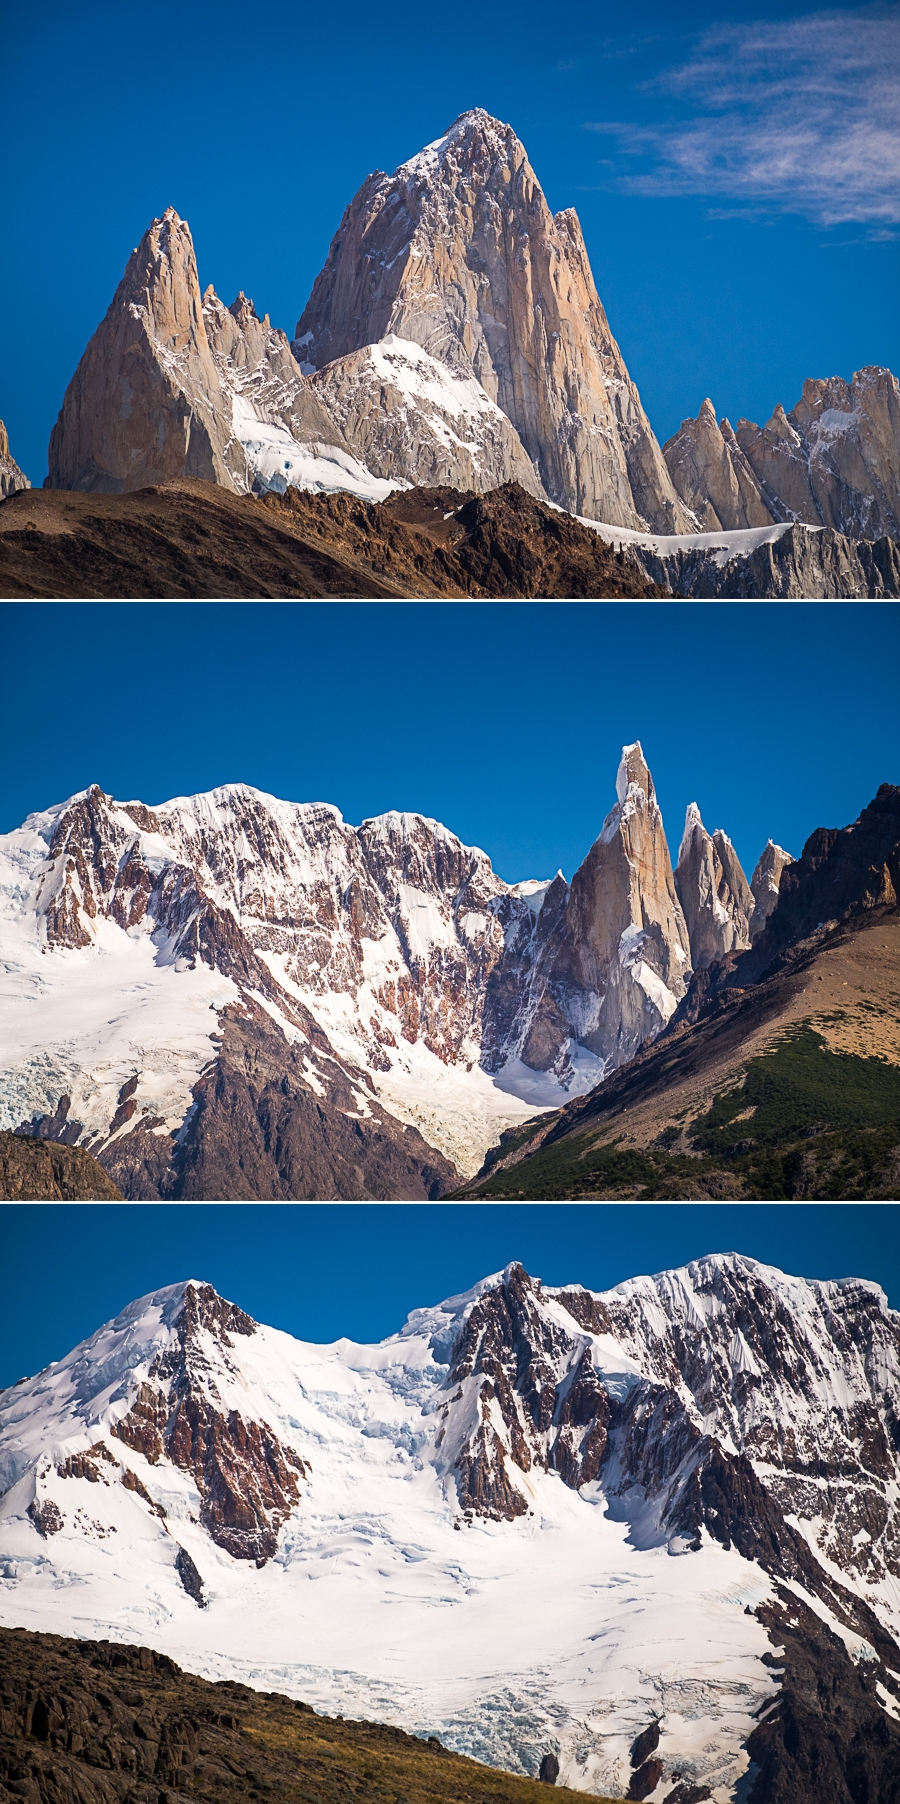 Closeup views of Cerro Fitz Roy and Cerro Torre from the Mirador de los Cóndores - El Chaltén - Argentina